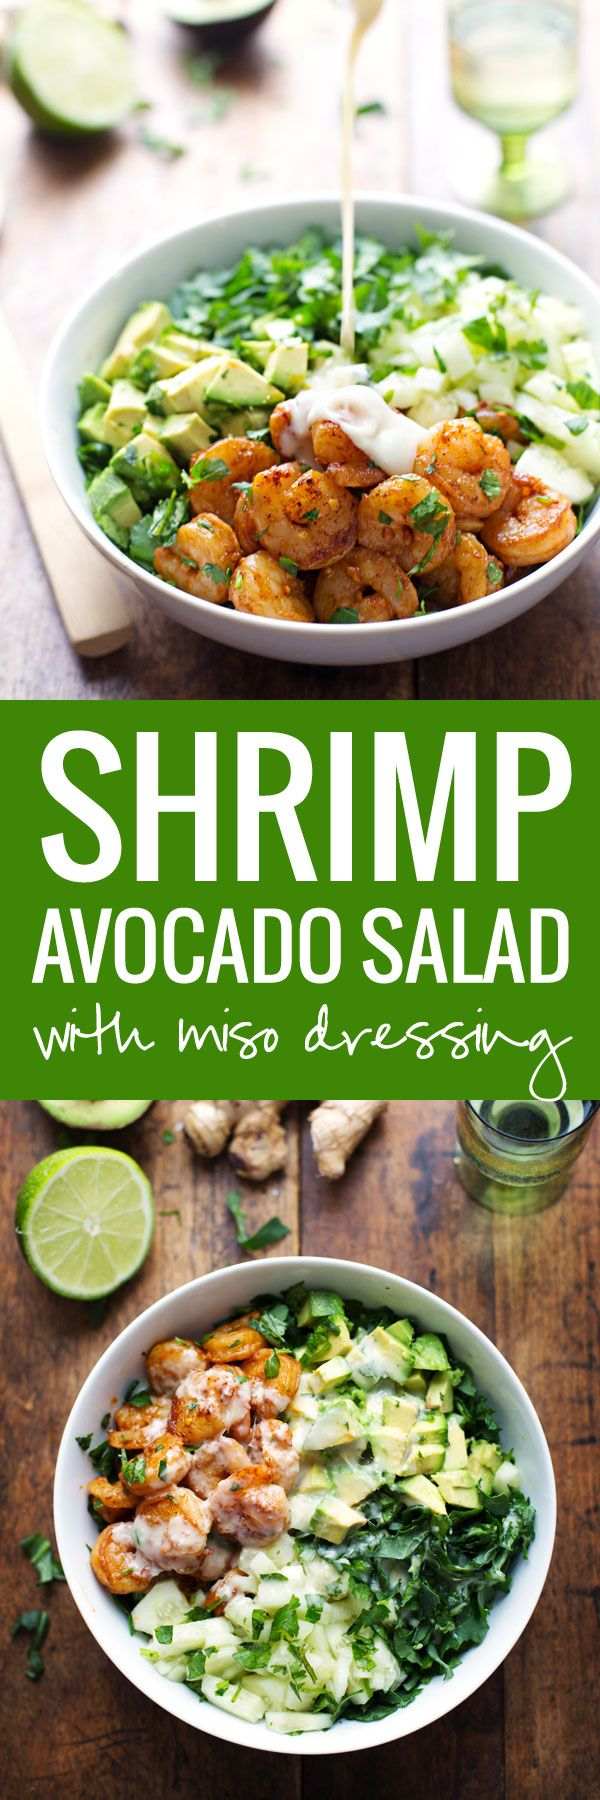 This Spicy Shrimp and Avocado Salad: has cucumbers, baby kale, shrimp, and avocado with a creamy miso dressing.